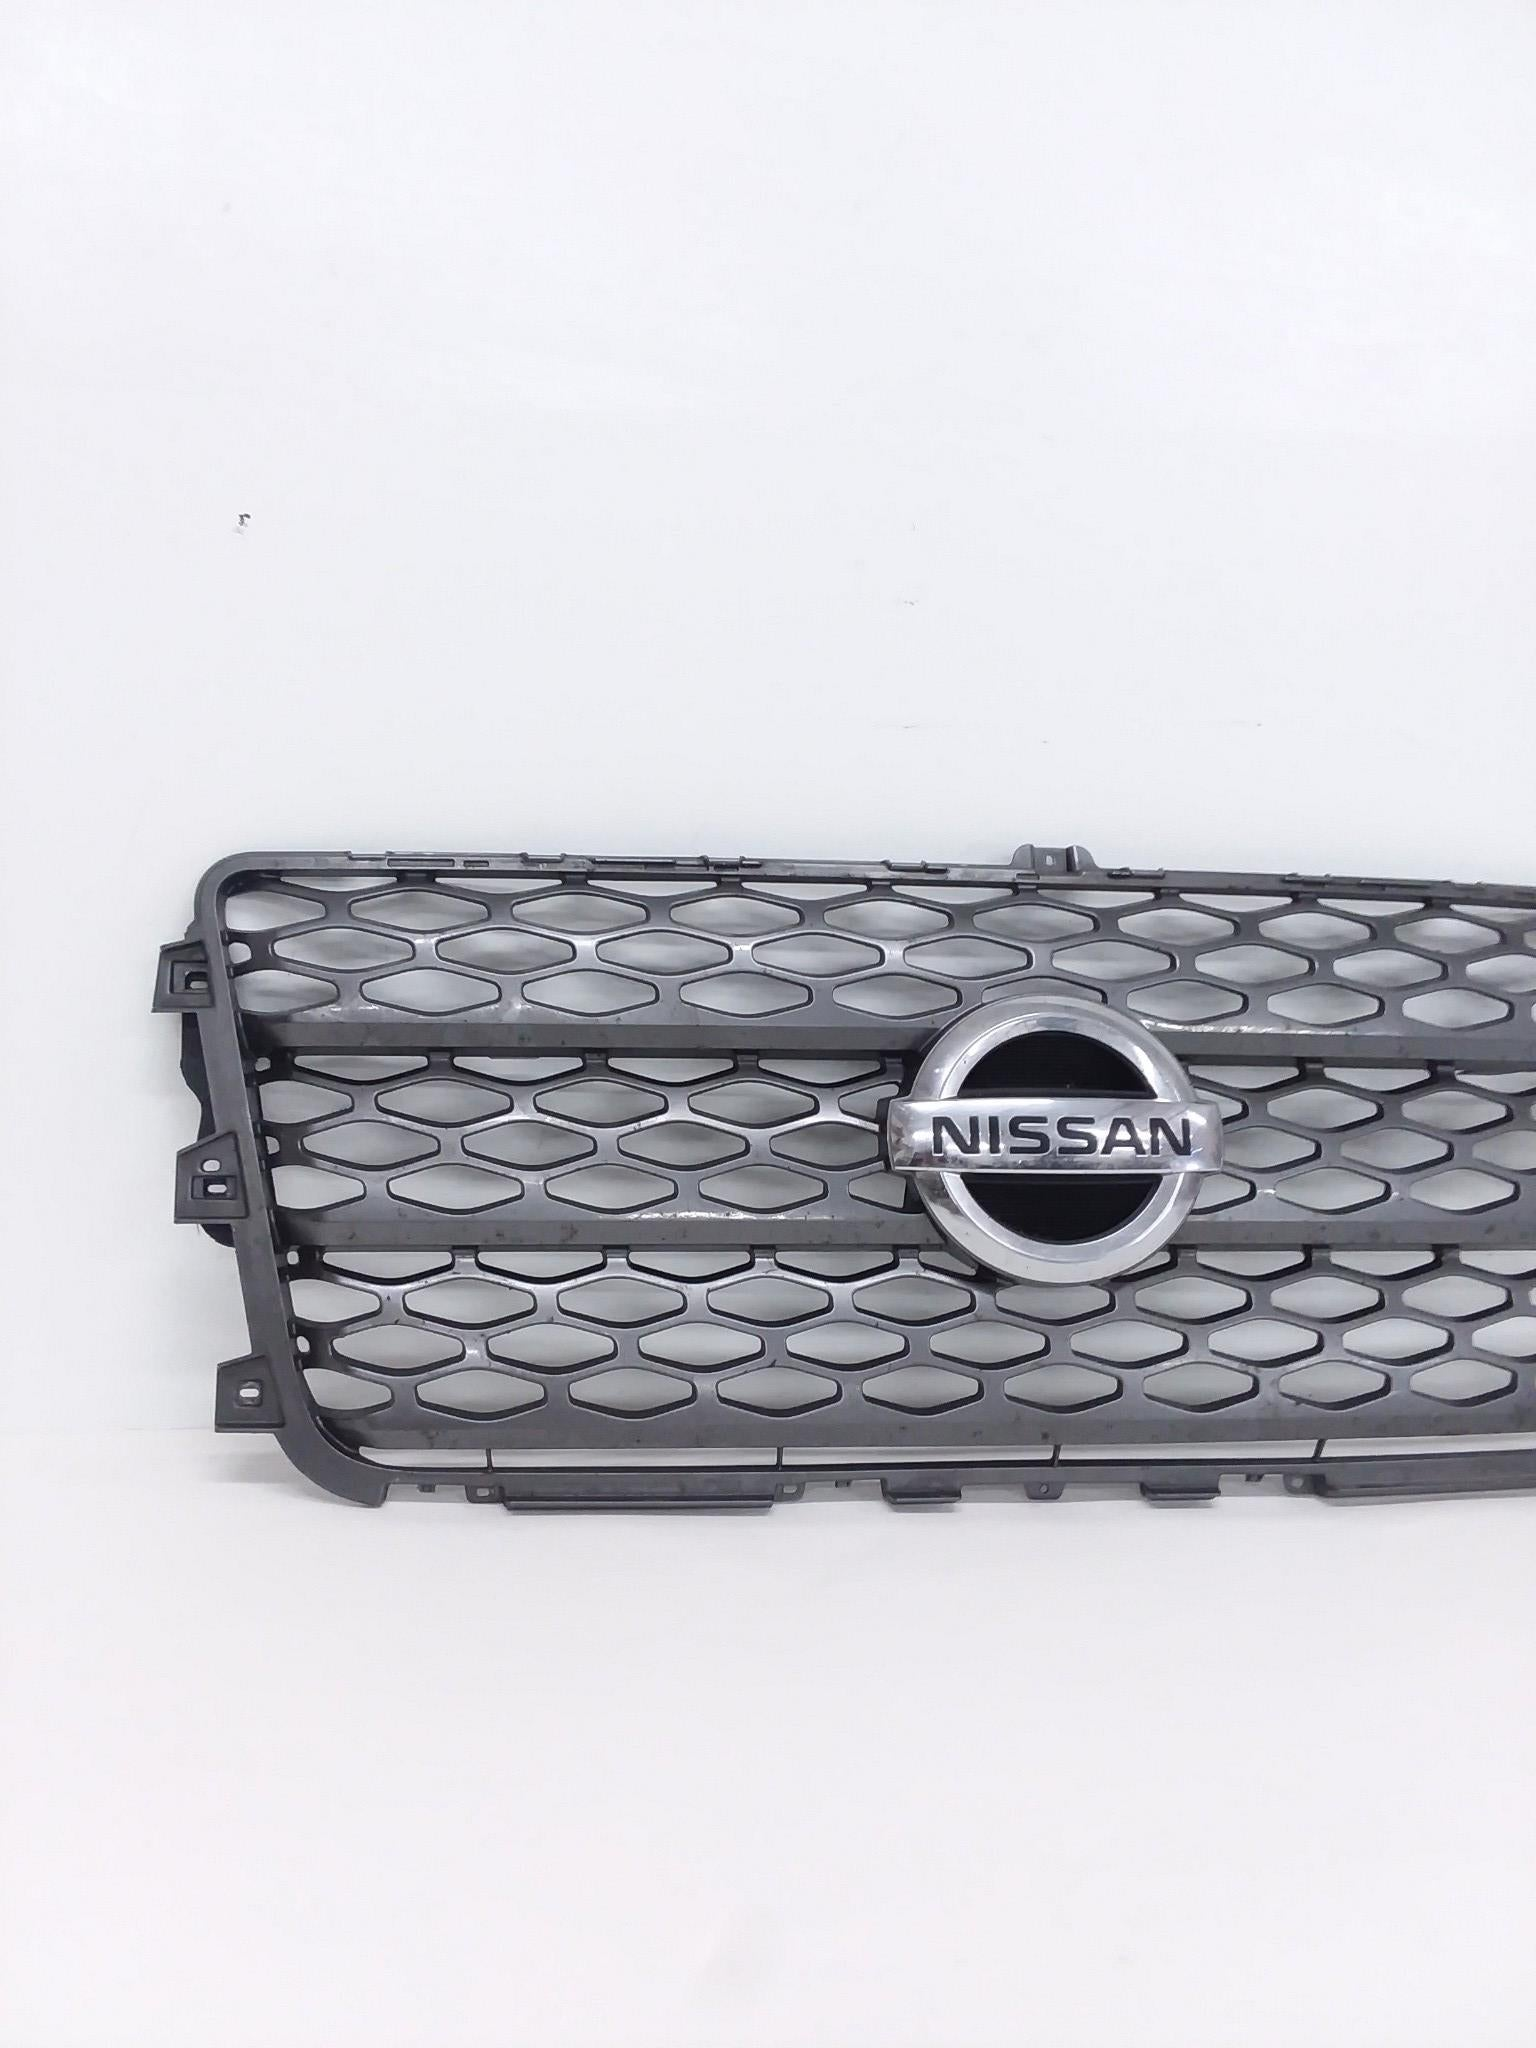 2016-2018 Nissan Titan XD Front Grille Insert Mesh Grill OEM 62324 EZ55A